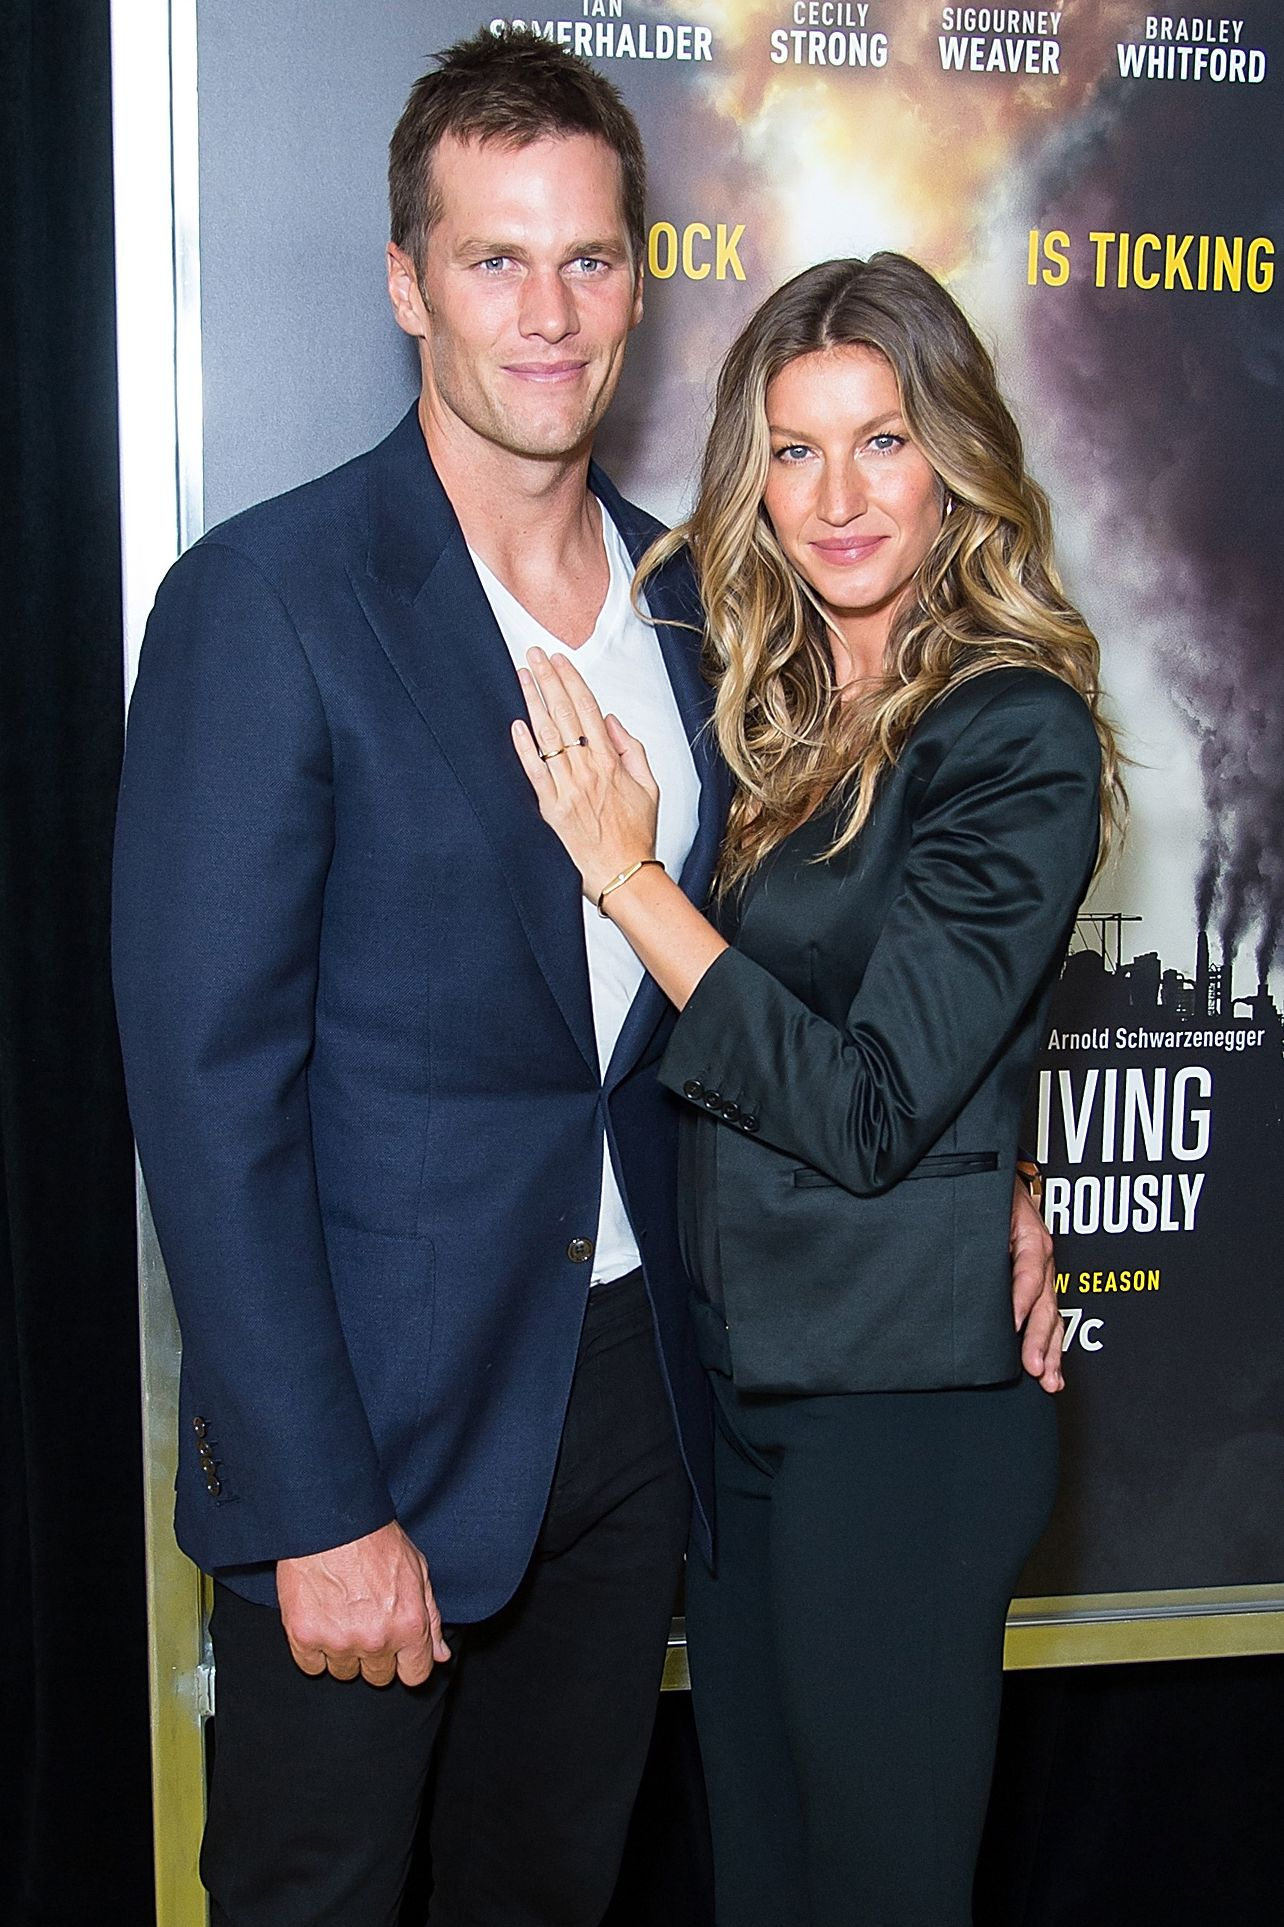 Tom Brady and Gisele Bundchen It's not too strange that a hunky NFL player and a gorgeous former Victoria's Secret Angel both have similarly flawless bone structure and skin. But their coloring is also close enough that the married pair and parents of two could easily pass for siblings.